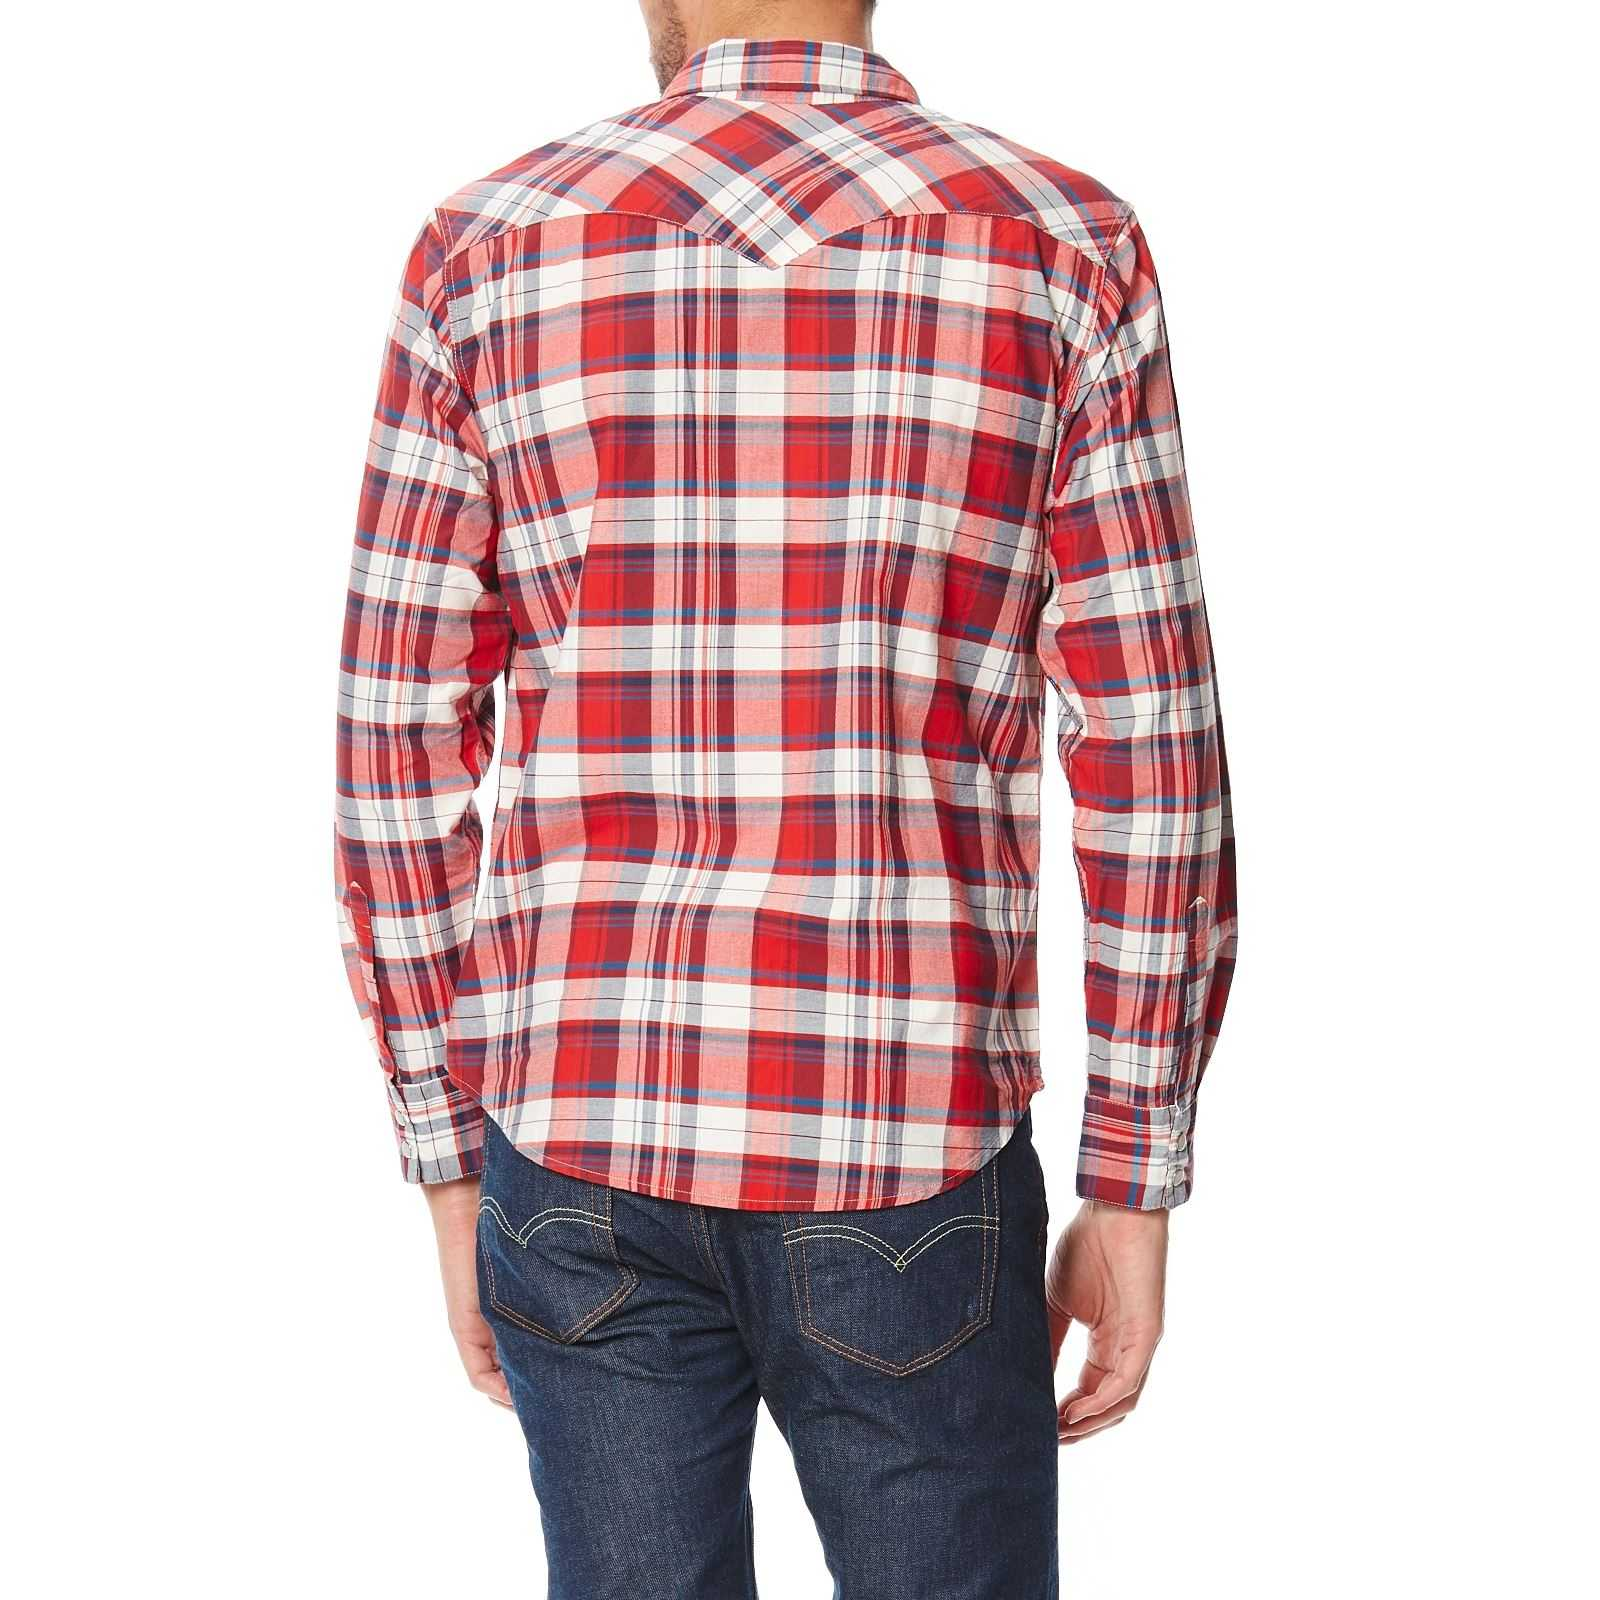 Western Rouge Barstow Longues Levi's Brandalley Manches Chemise 4HfqPwx